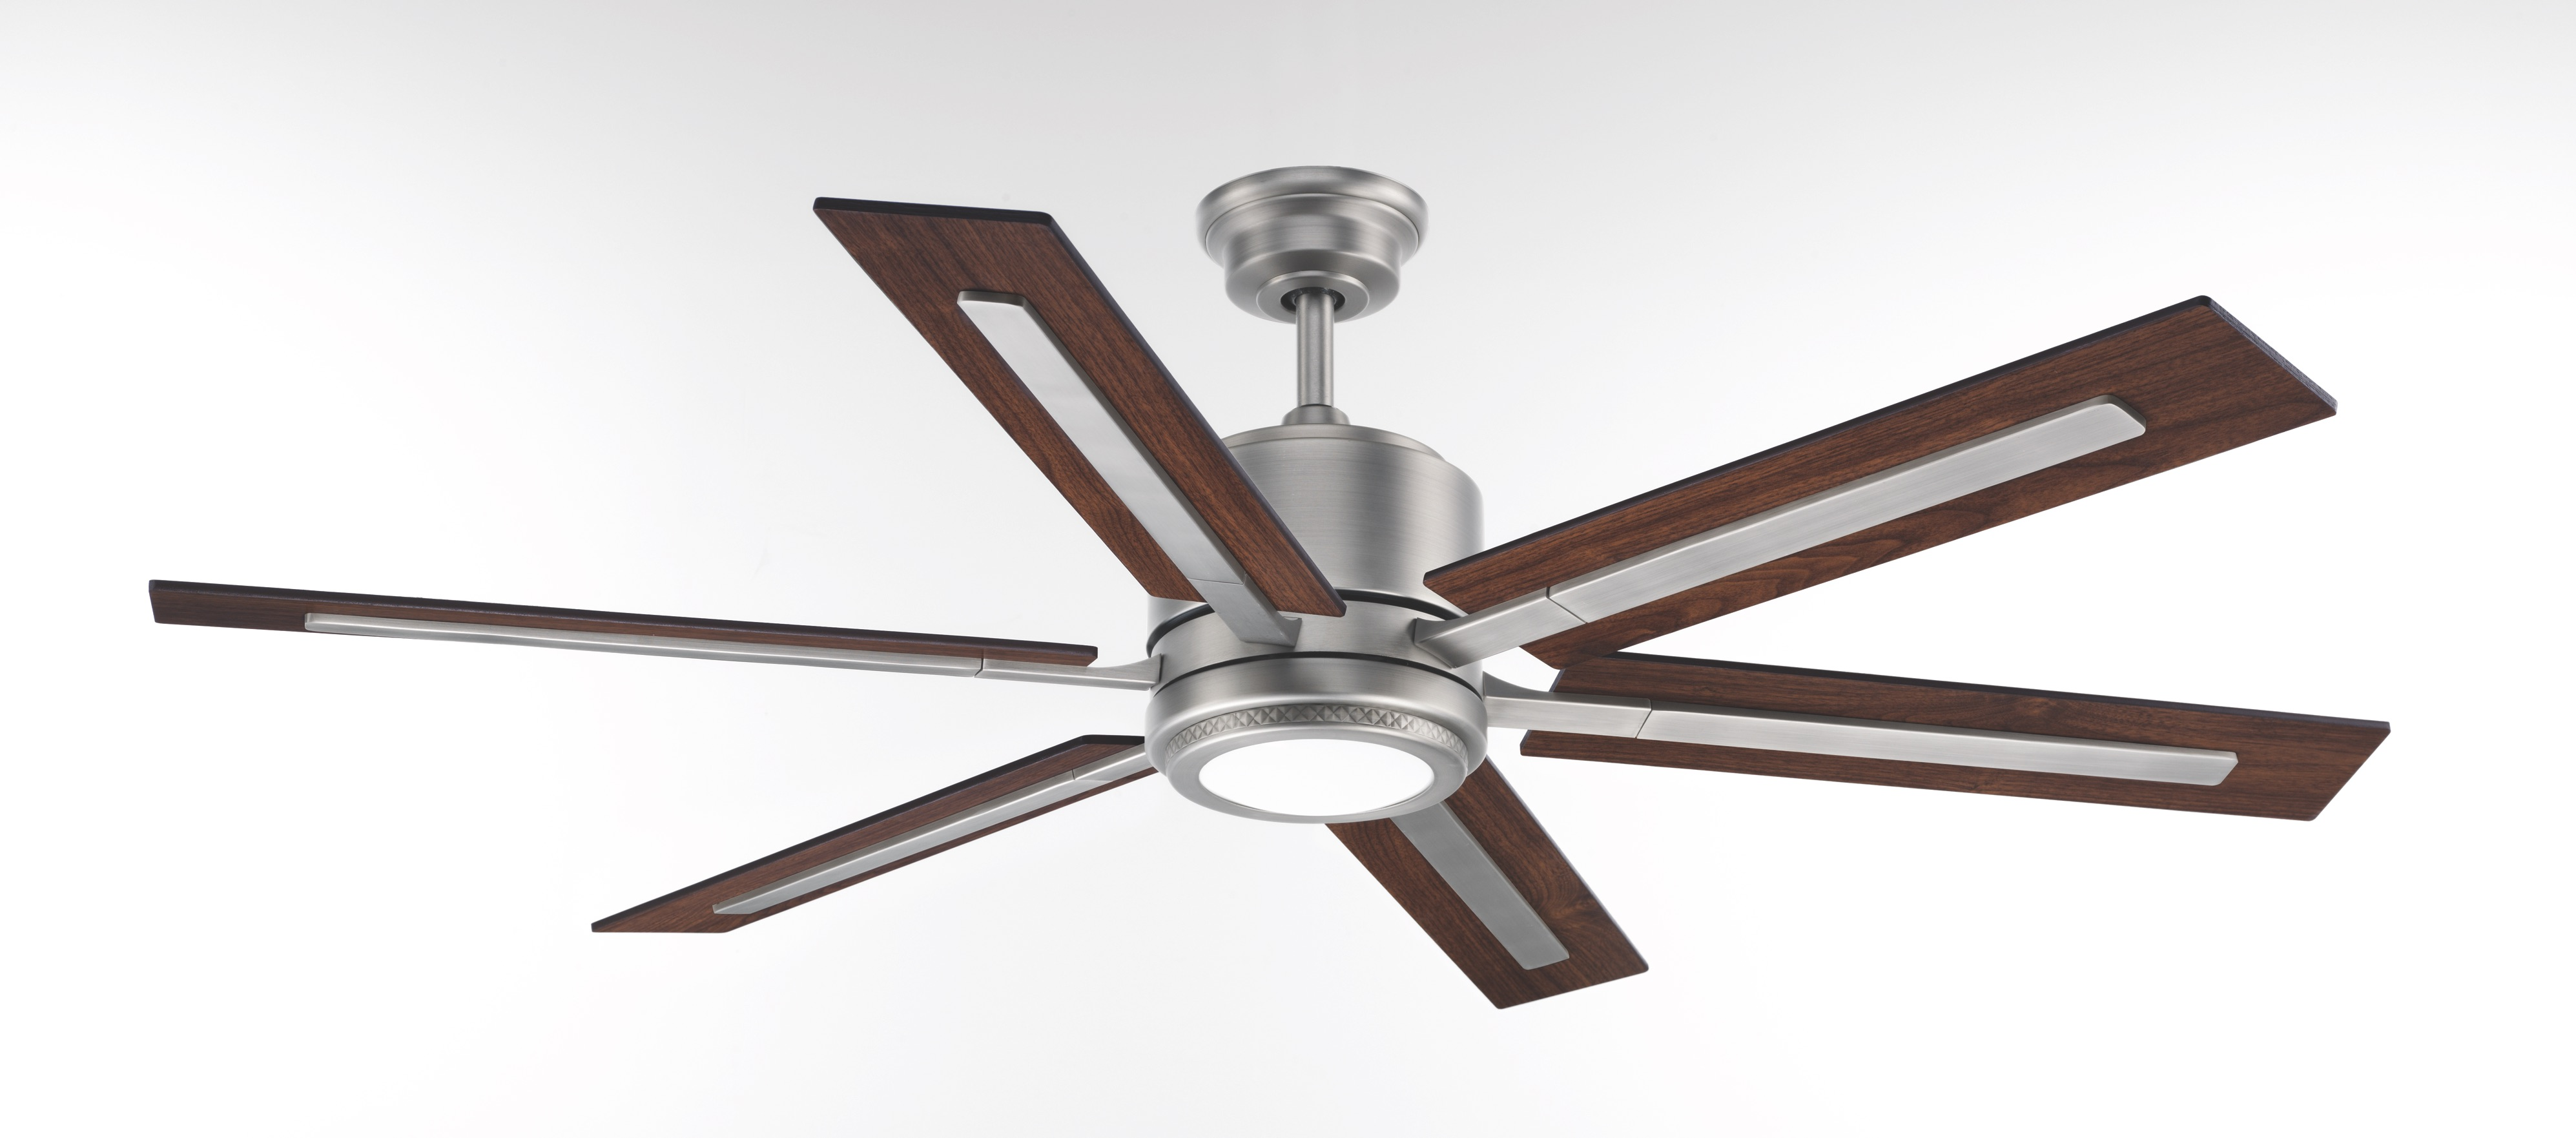 Progress Glandon ceiling fan